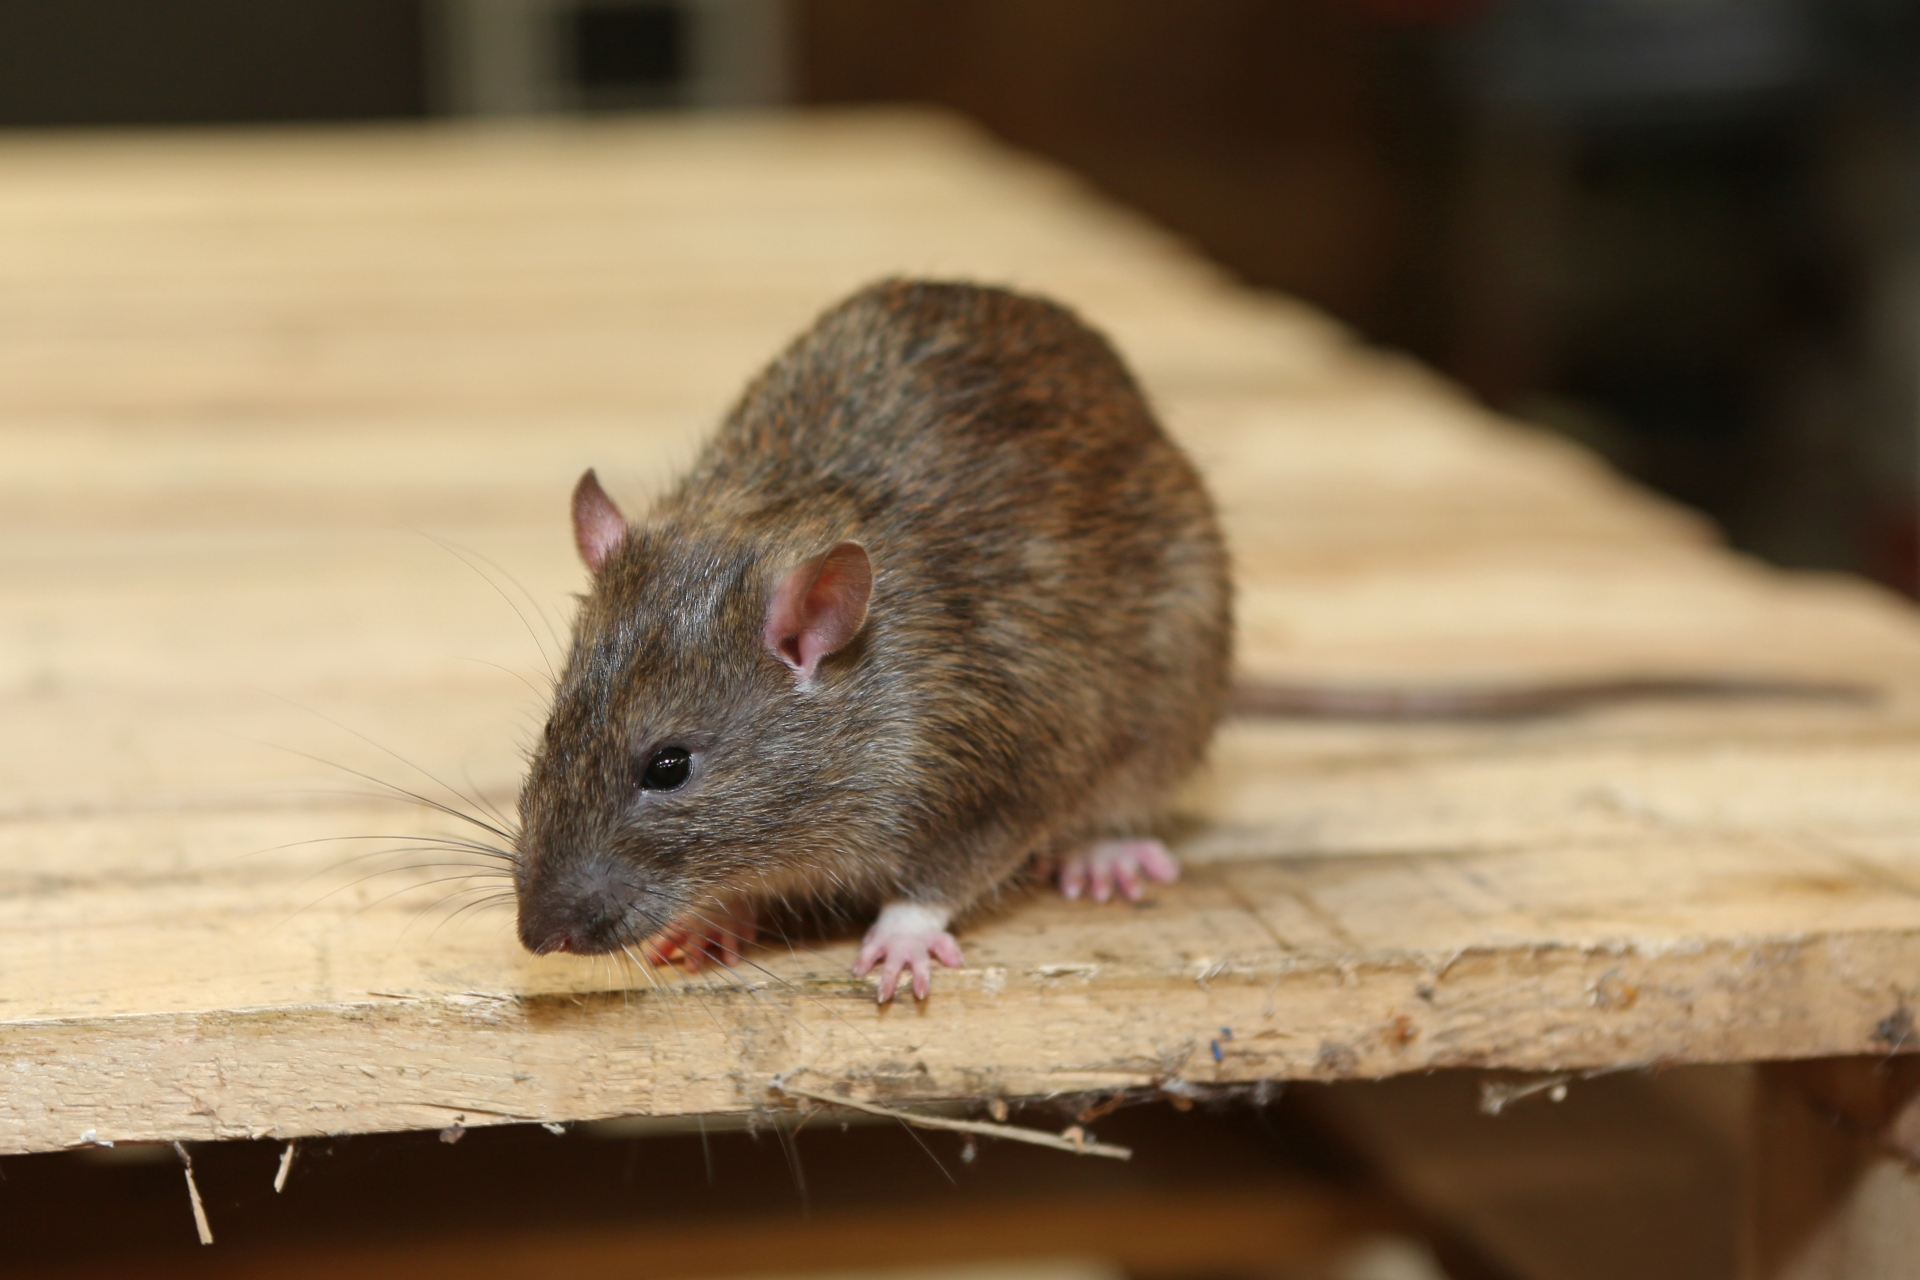 Rat Infestation, Pest Control in Lambeth, SE11. Call Now 020 8166 9746